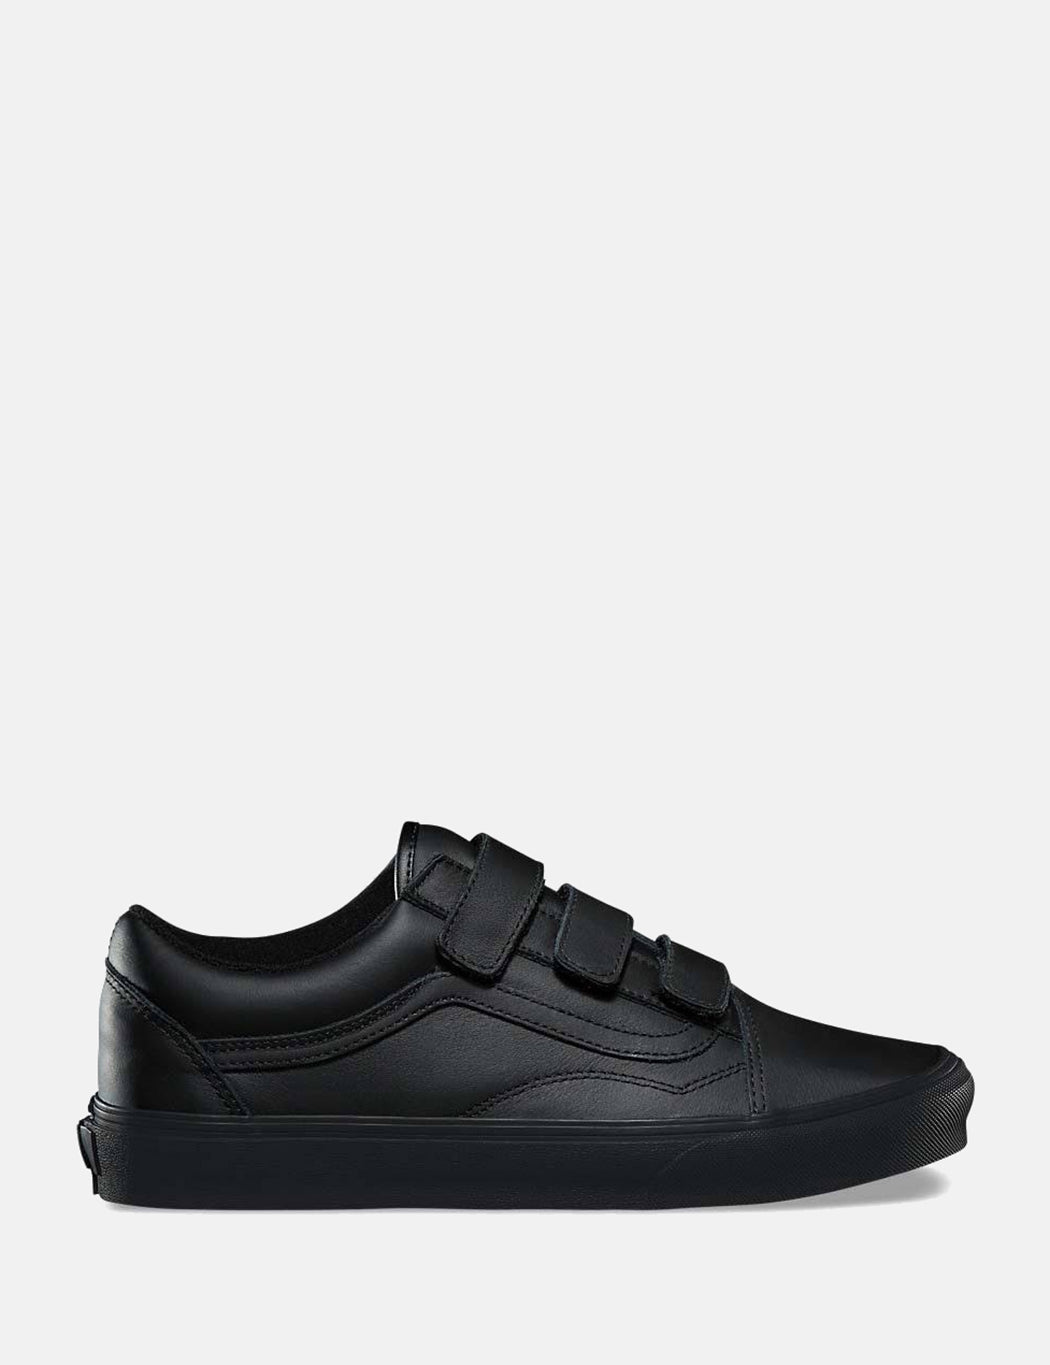 bc26b69811a727 Vans Old Skool Velcro (Mono Leather) - Black